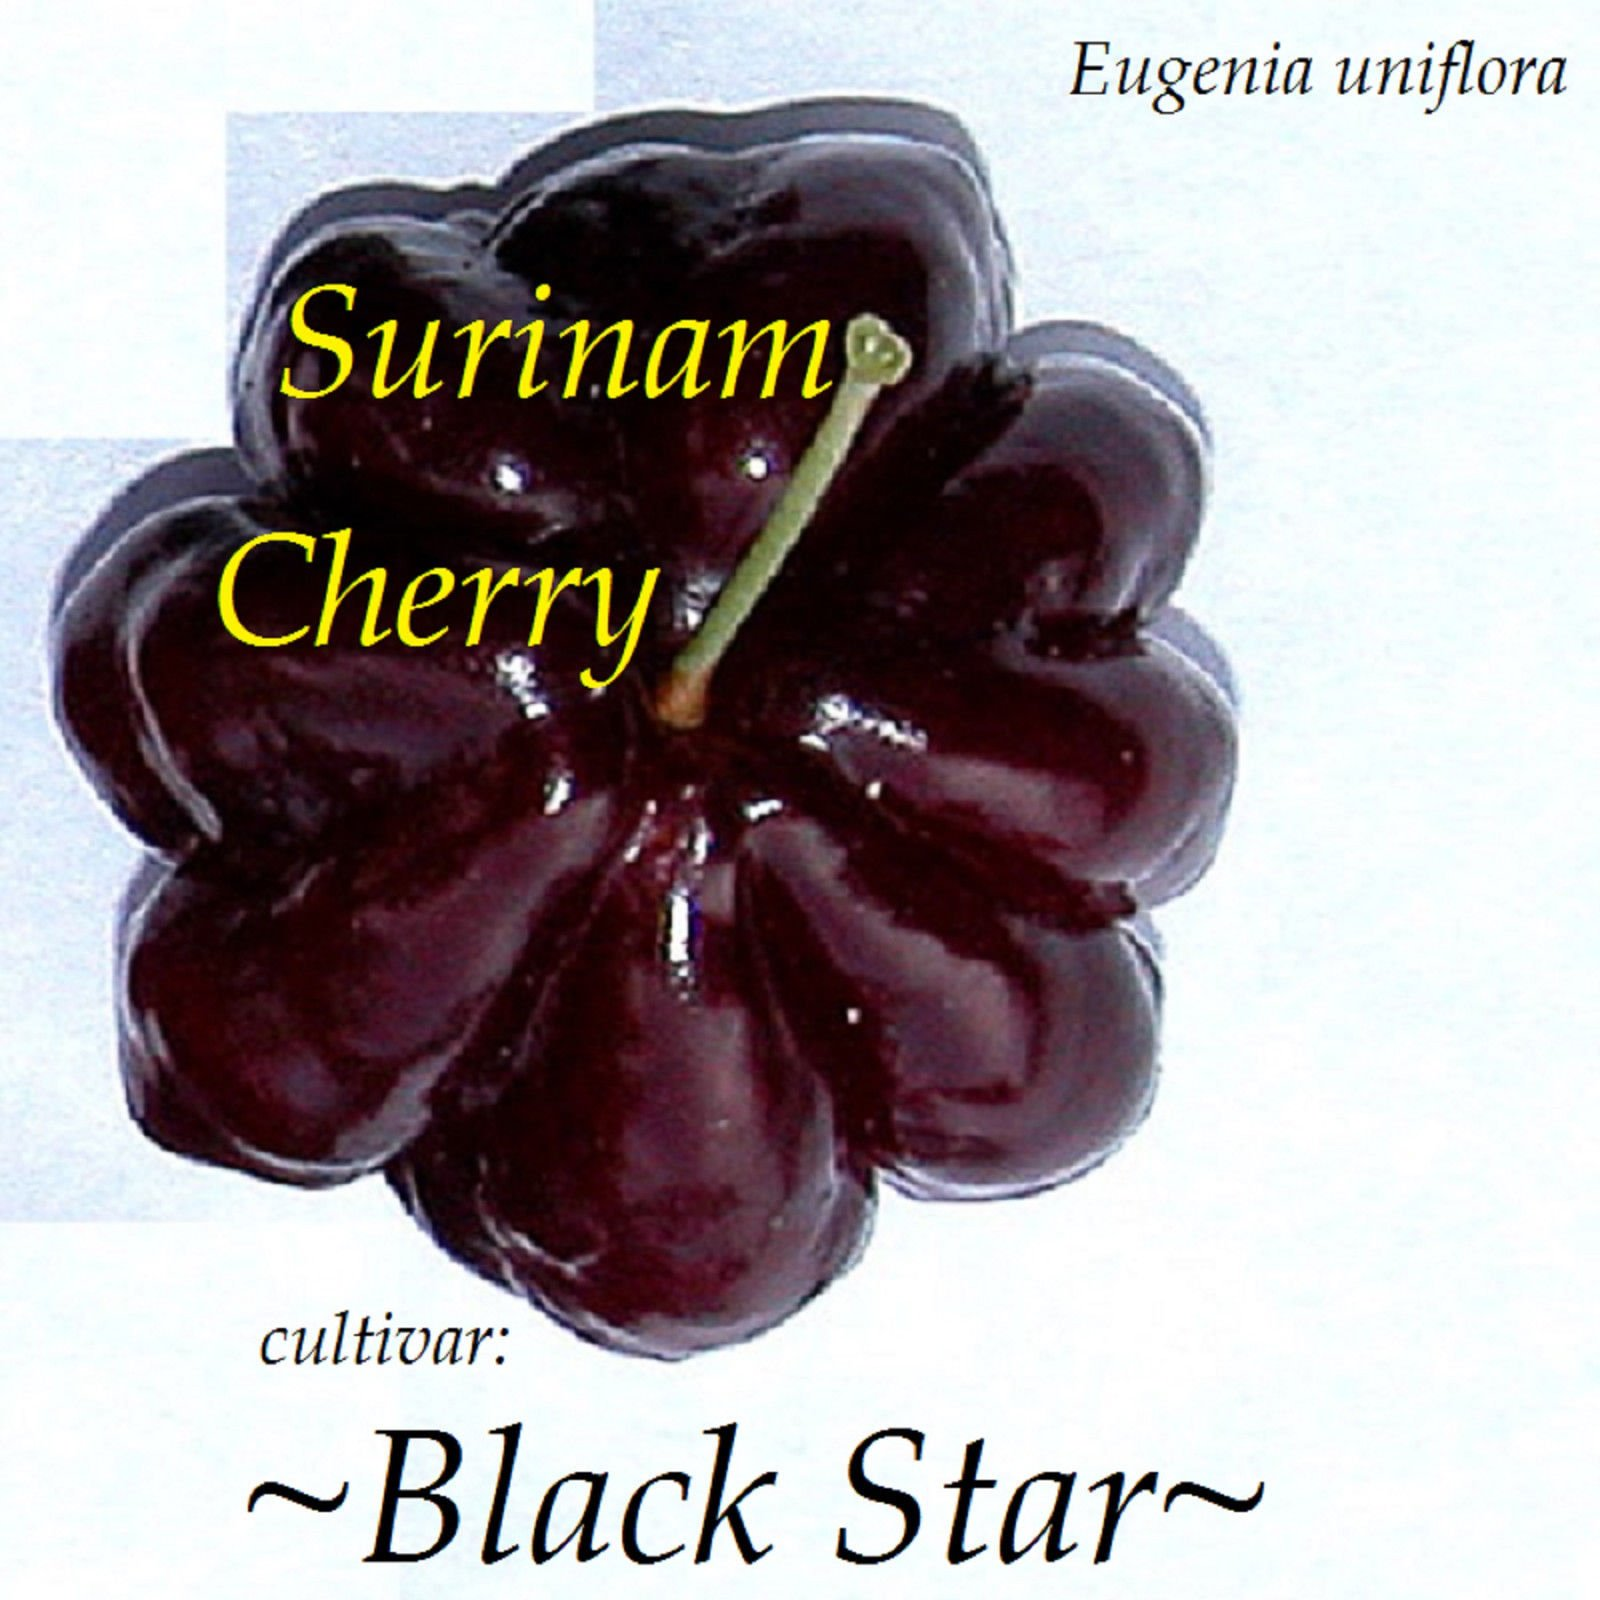 ~BLACK STAR~ cv Surinam Cherry Fruit Tree Eugenia uniflora 10 LIVE potd STARTERS